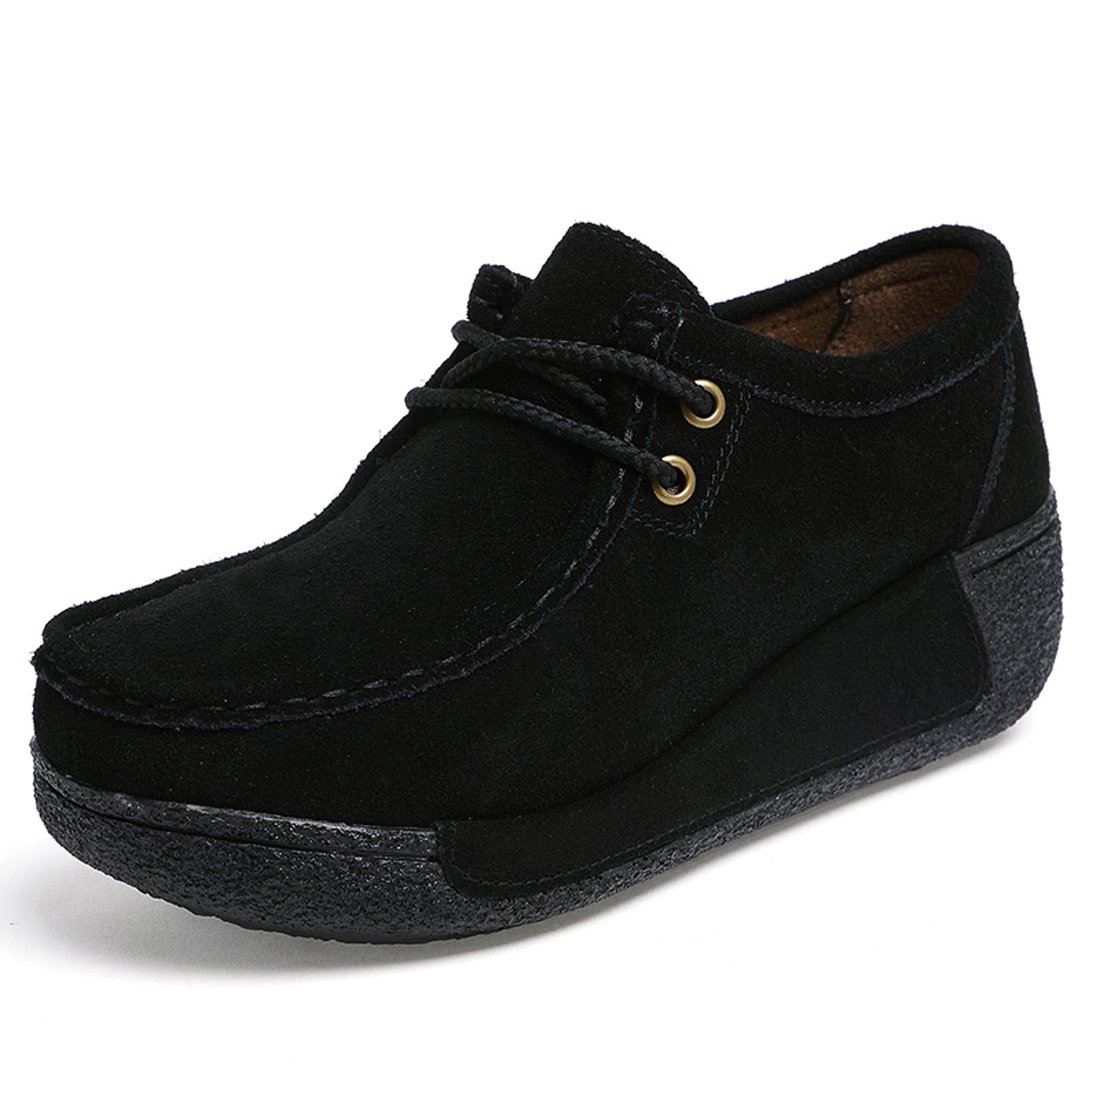 Z.SUO Women Platform Loafers Comfort Suede Moccasins Lace up Low Top Wedge Driving Shoes (5.5 US, Black)